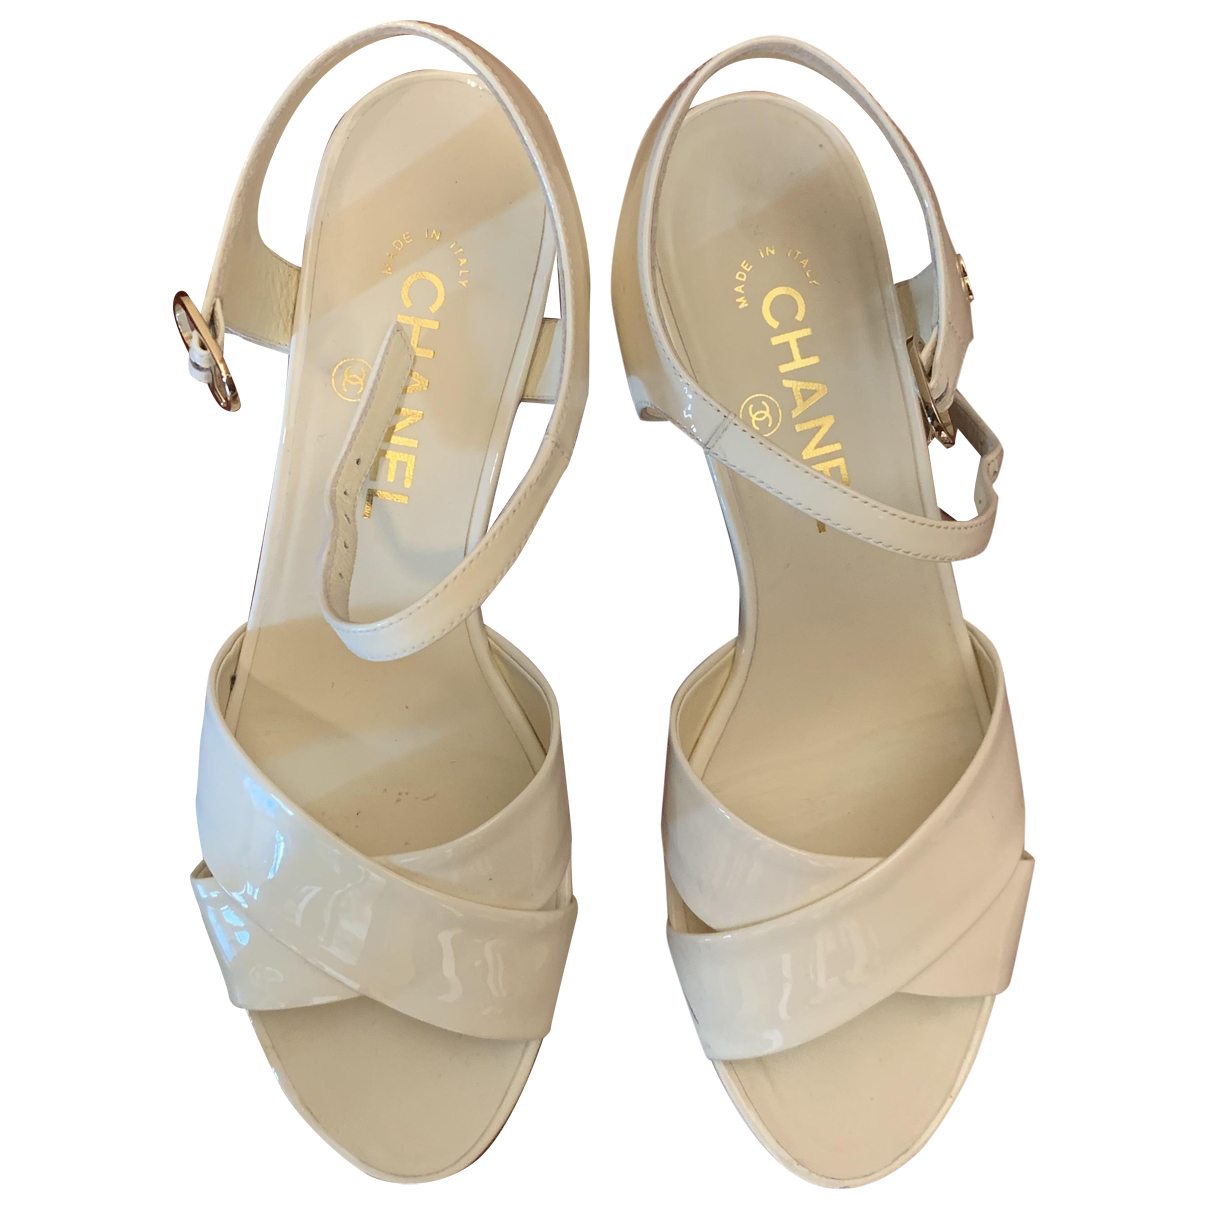 Chanel \N White Patent leather Sandals for Women 38 EU